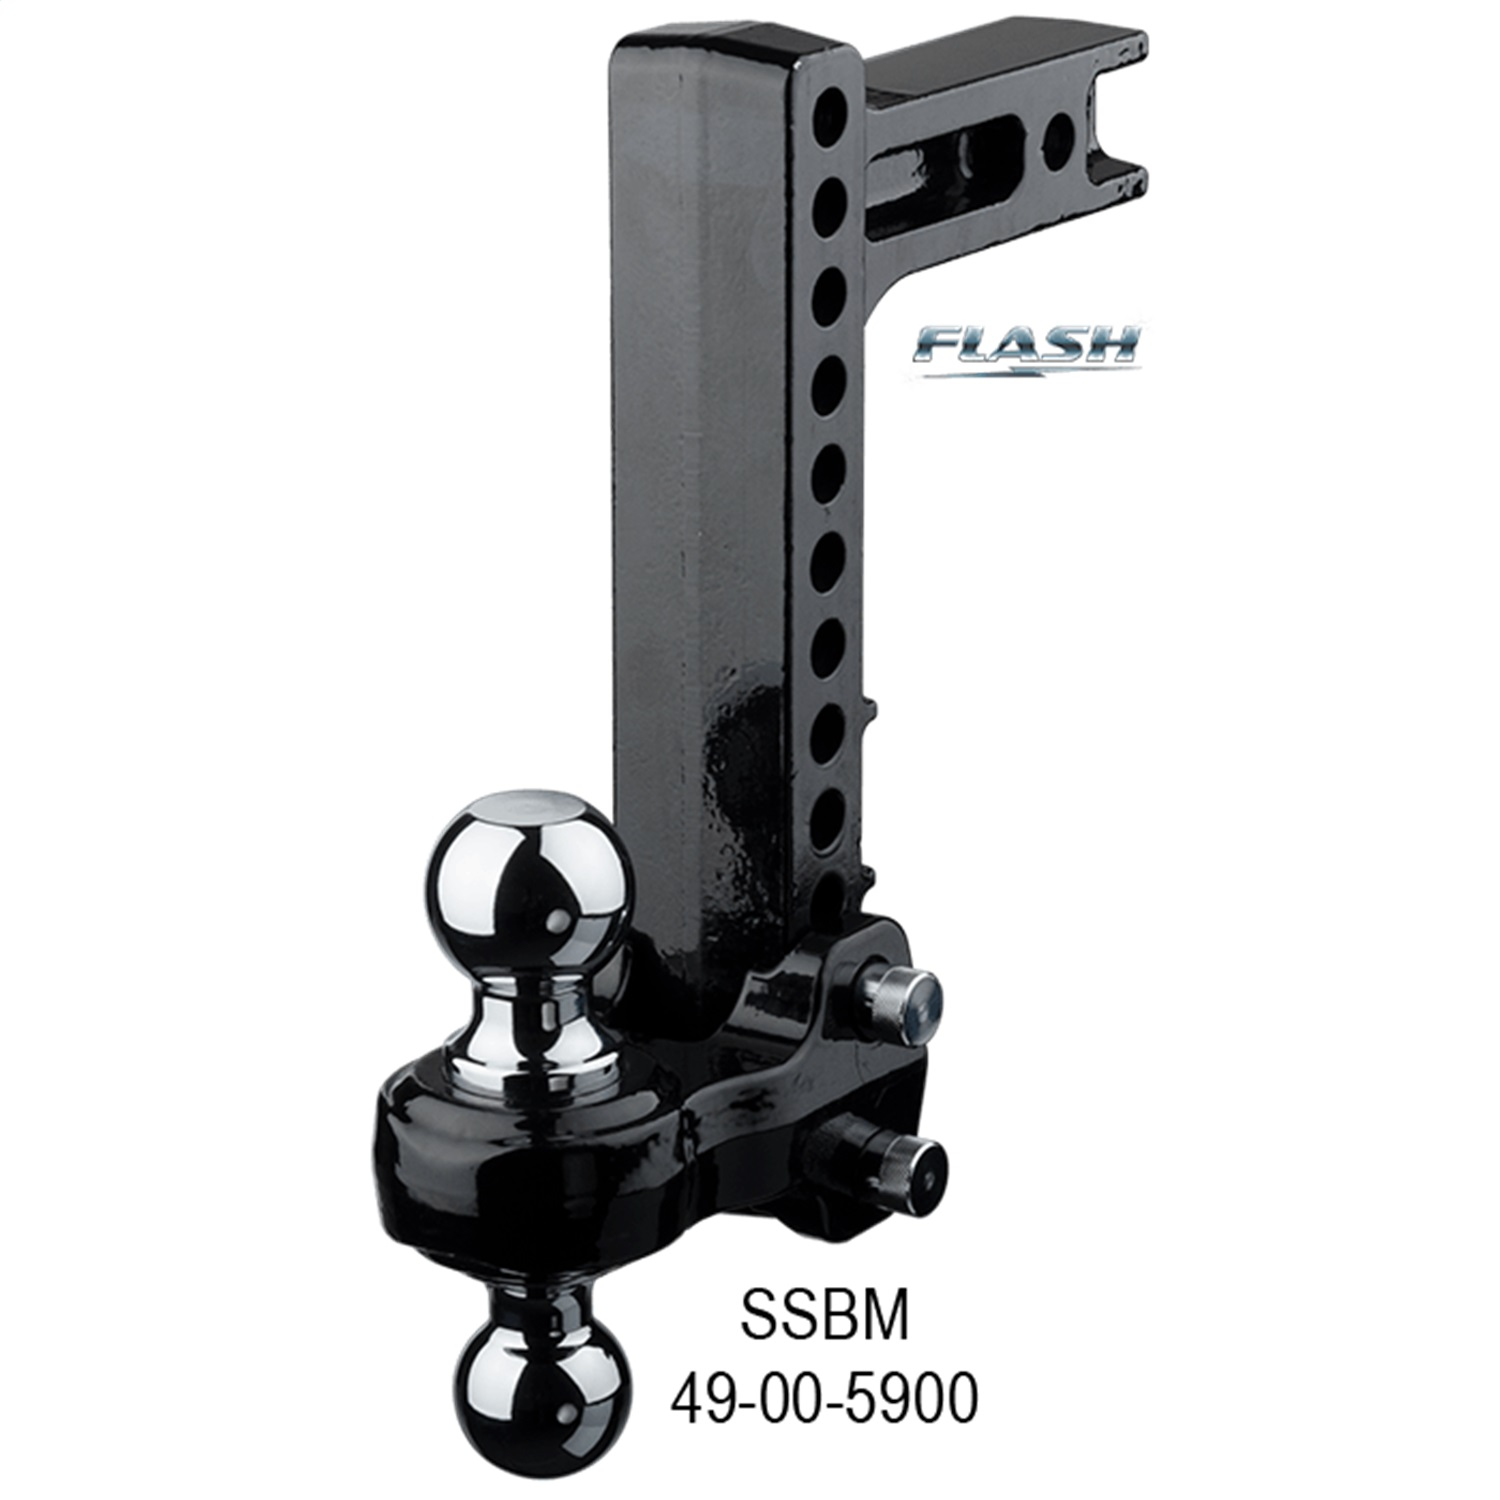 Fastway Trailer 49-00-5900 Flash SSBM Solid Steel Ball Mount ; 10 in. Drop; 11 in. Rise; 2 And 2 5/16 in. Ball; Fits 2 in. Receiver ;